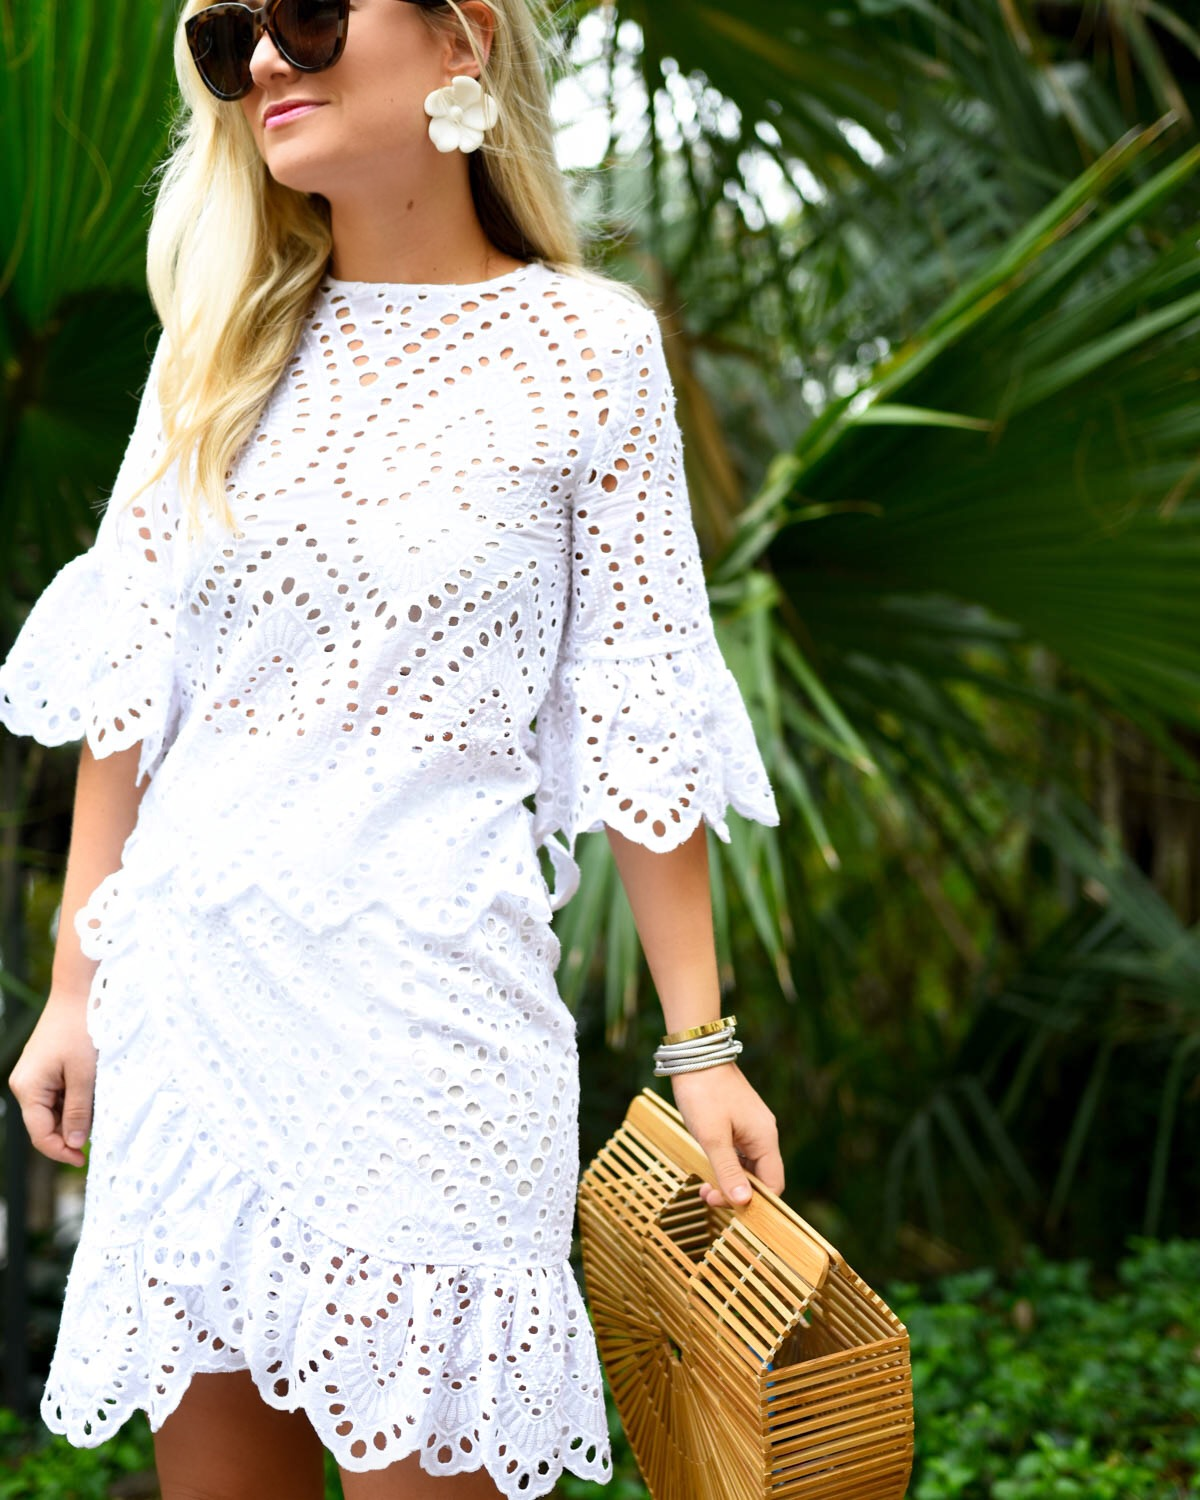 White-eyelet-dress, Winona-Australia-dress, White-wrap-dress, Revolve-dresses, Cult-Gaia-Arc-Bag, David-Yurman-Bracelets